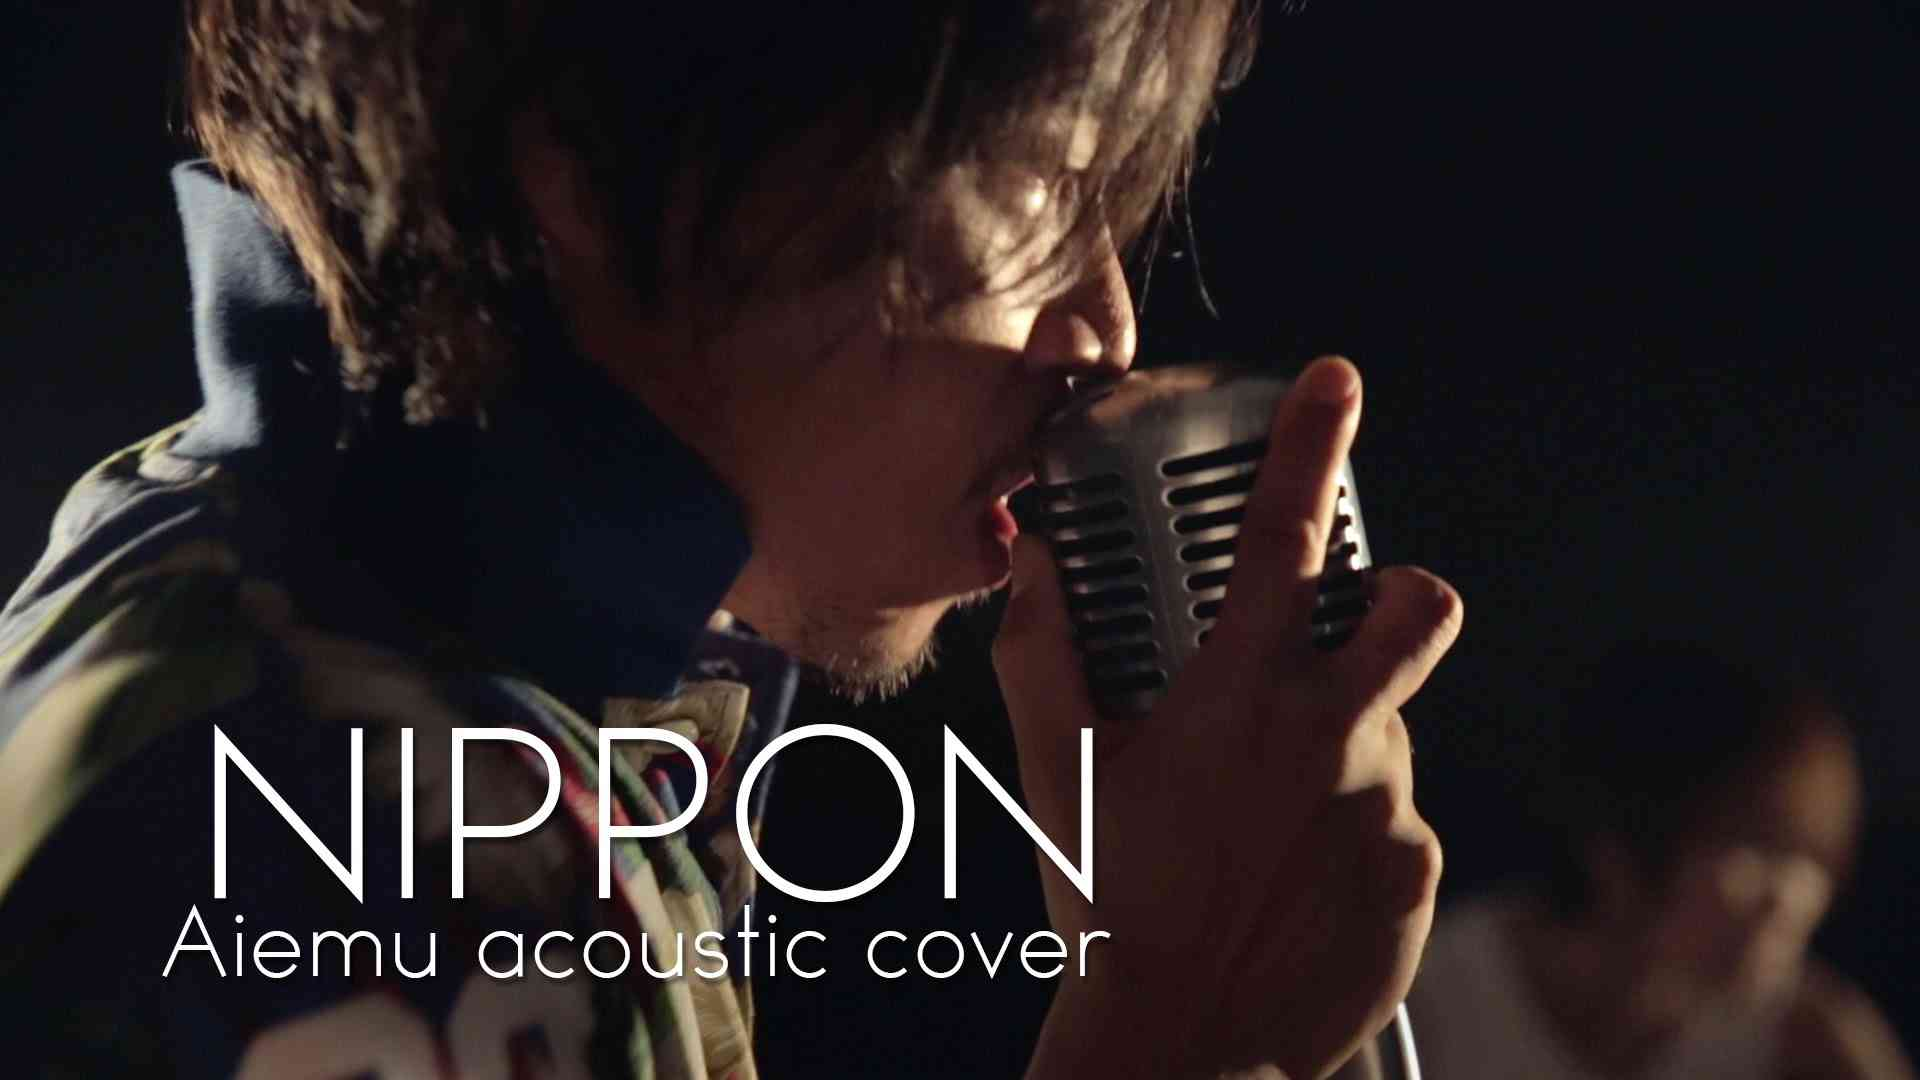 NIPPON - 椎名林檎(愛笑む acoustic cover) - YouTube